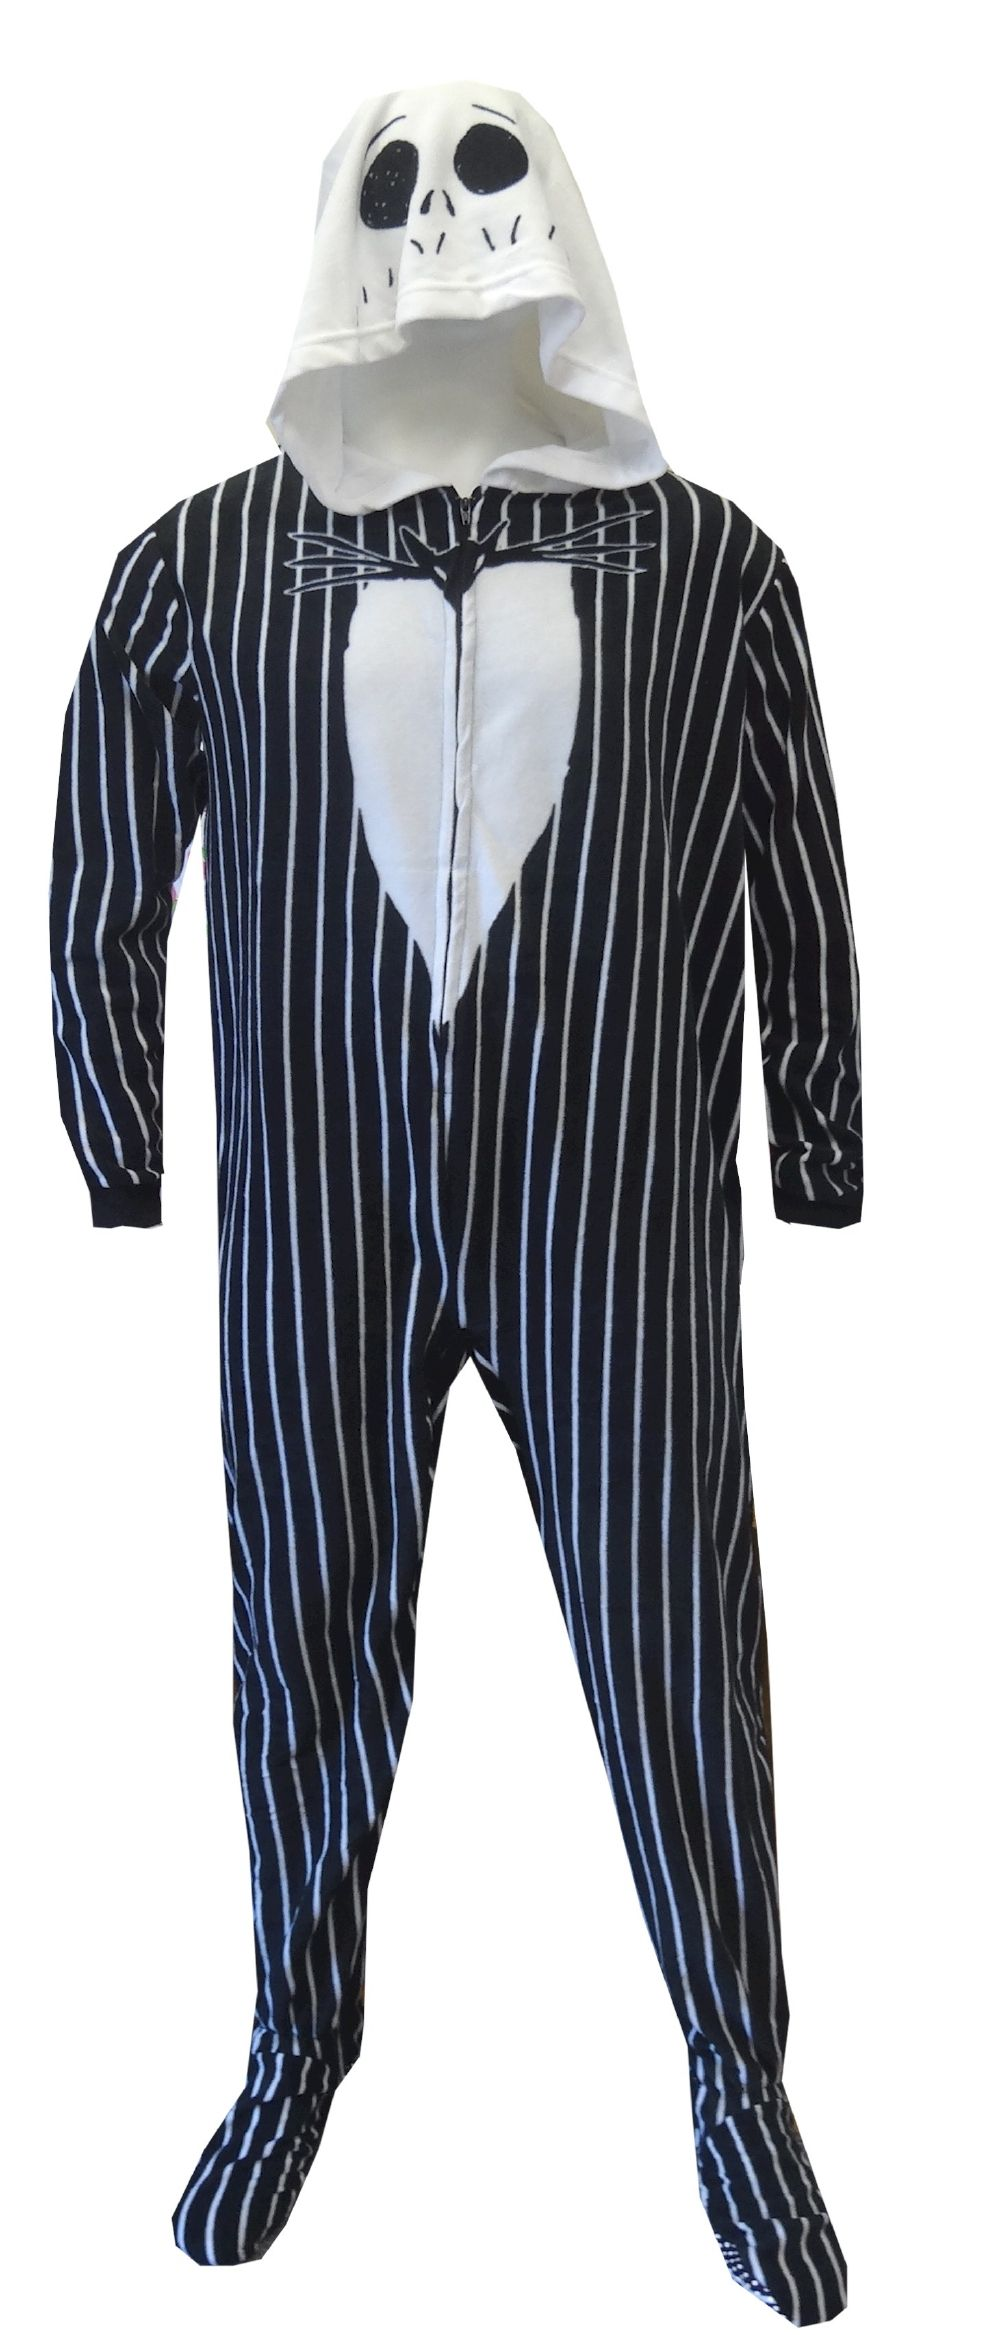 9cd0676c66 Nightmare Before Christmas Jack Skellington Unisex Footie Pajama  Description  Now you can look just like Jack Skellington! These unisex paja.